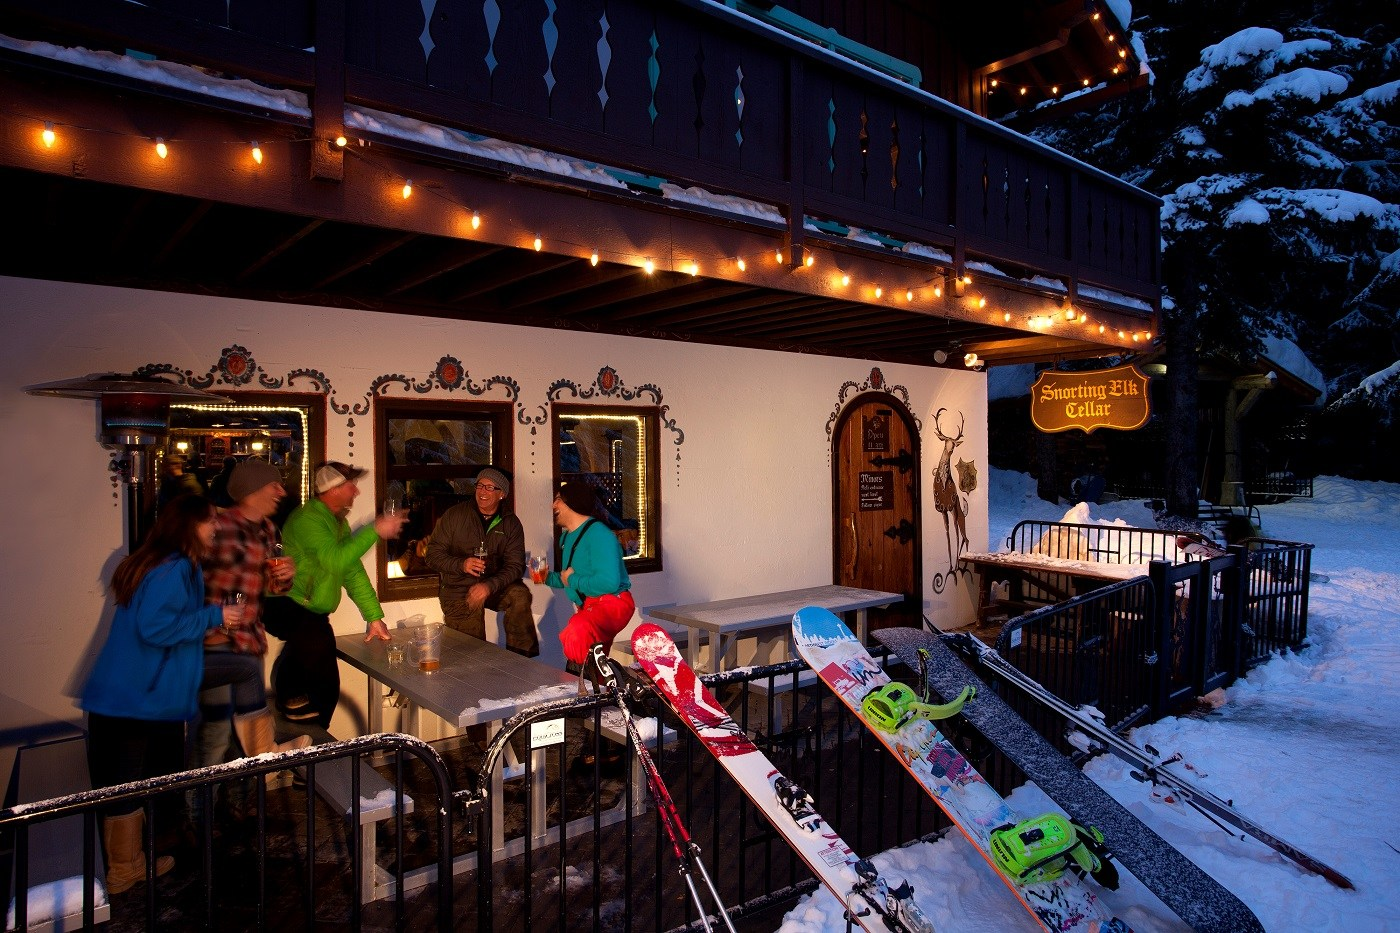 Snorting Elk Cellar Most Unique Ski Town Drinks